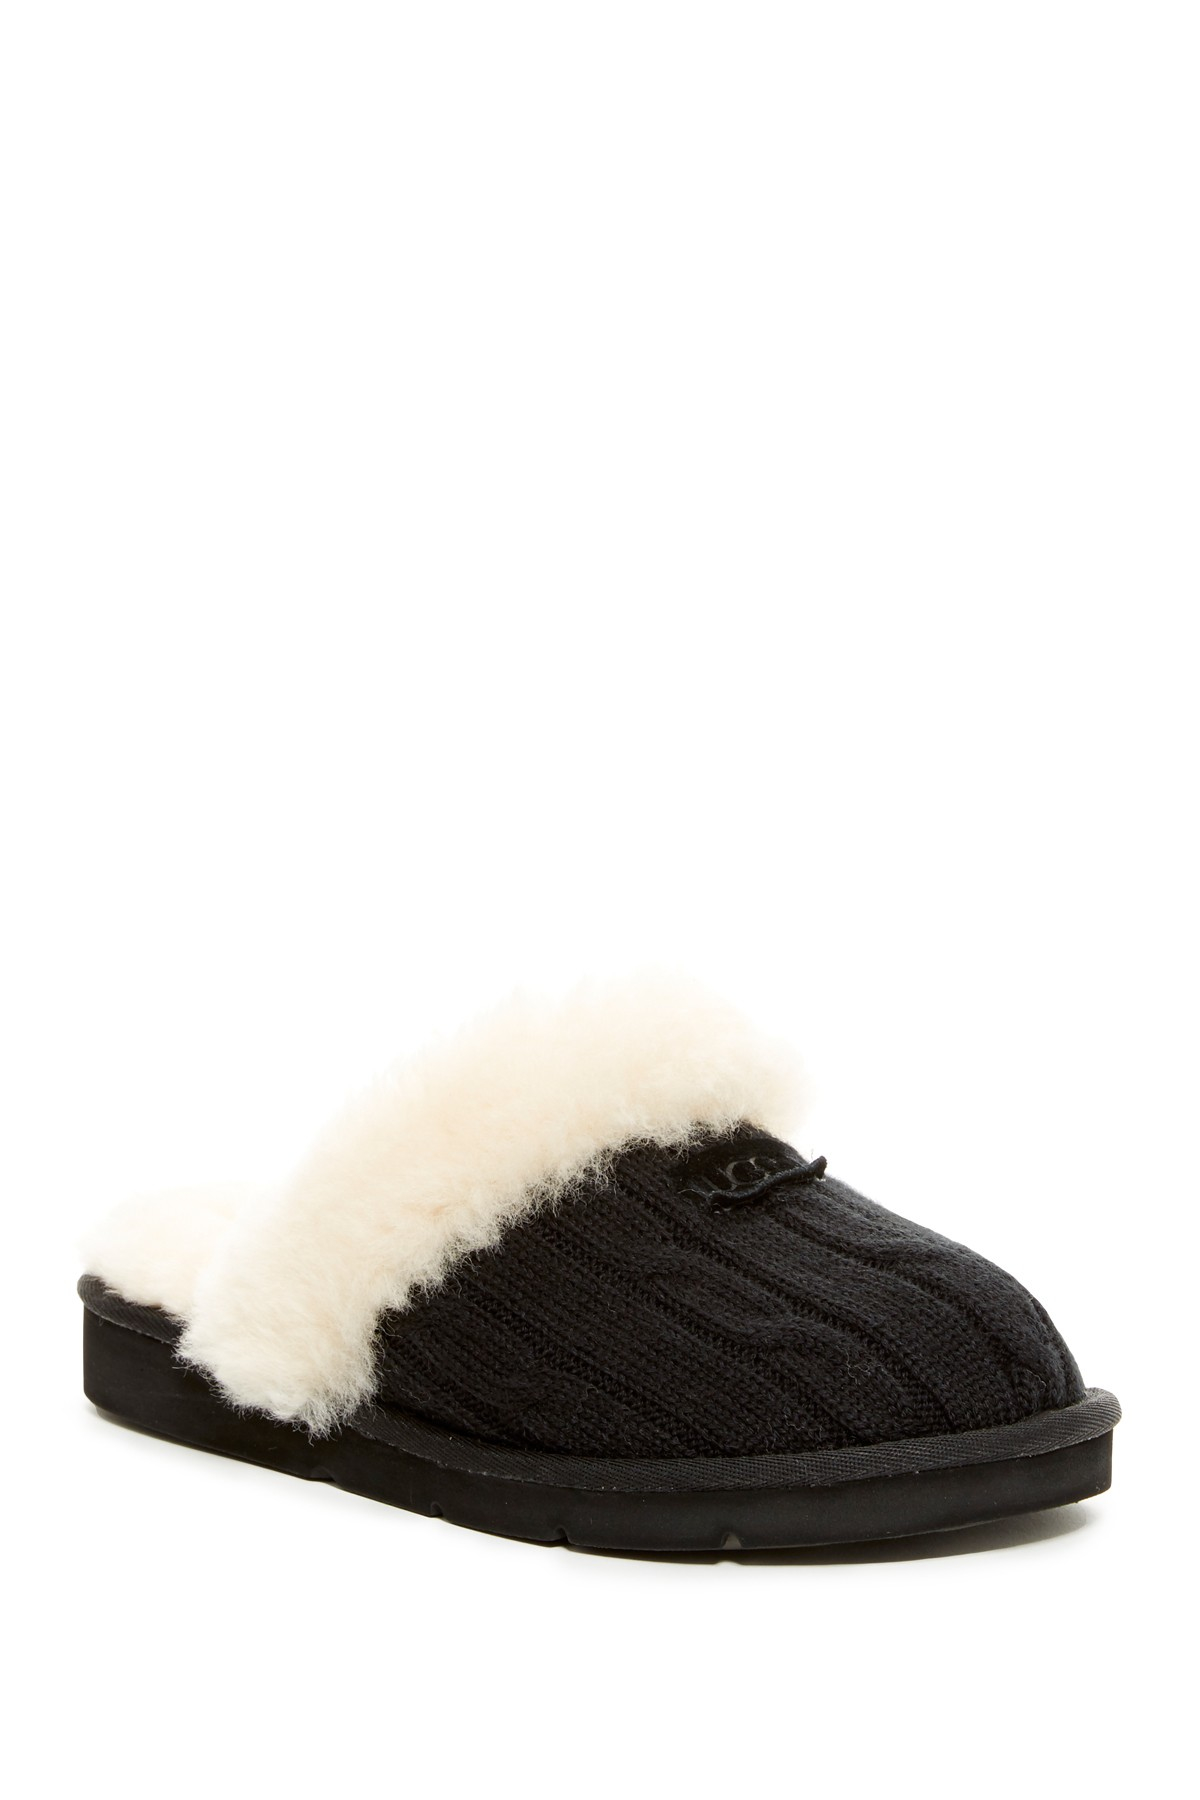 Ugg Cozy Genuine Shearling Lined Knit Slipper Lyst